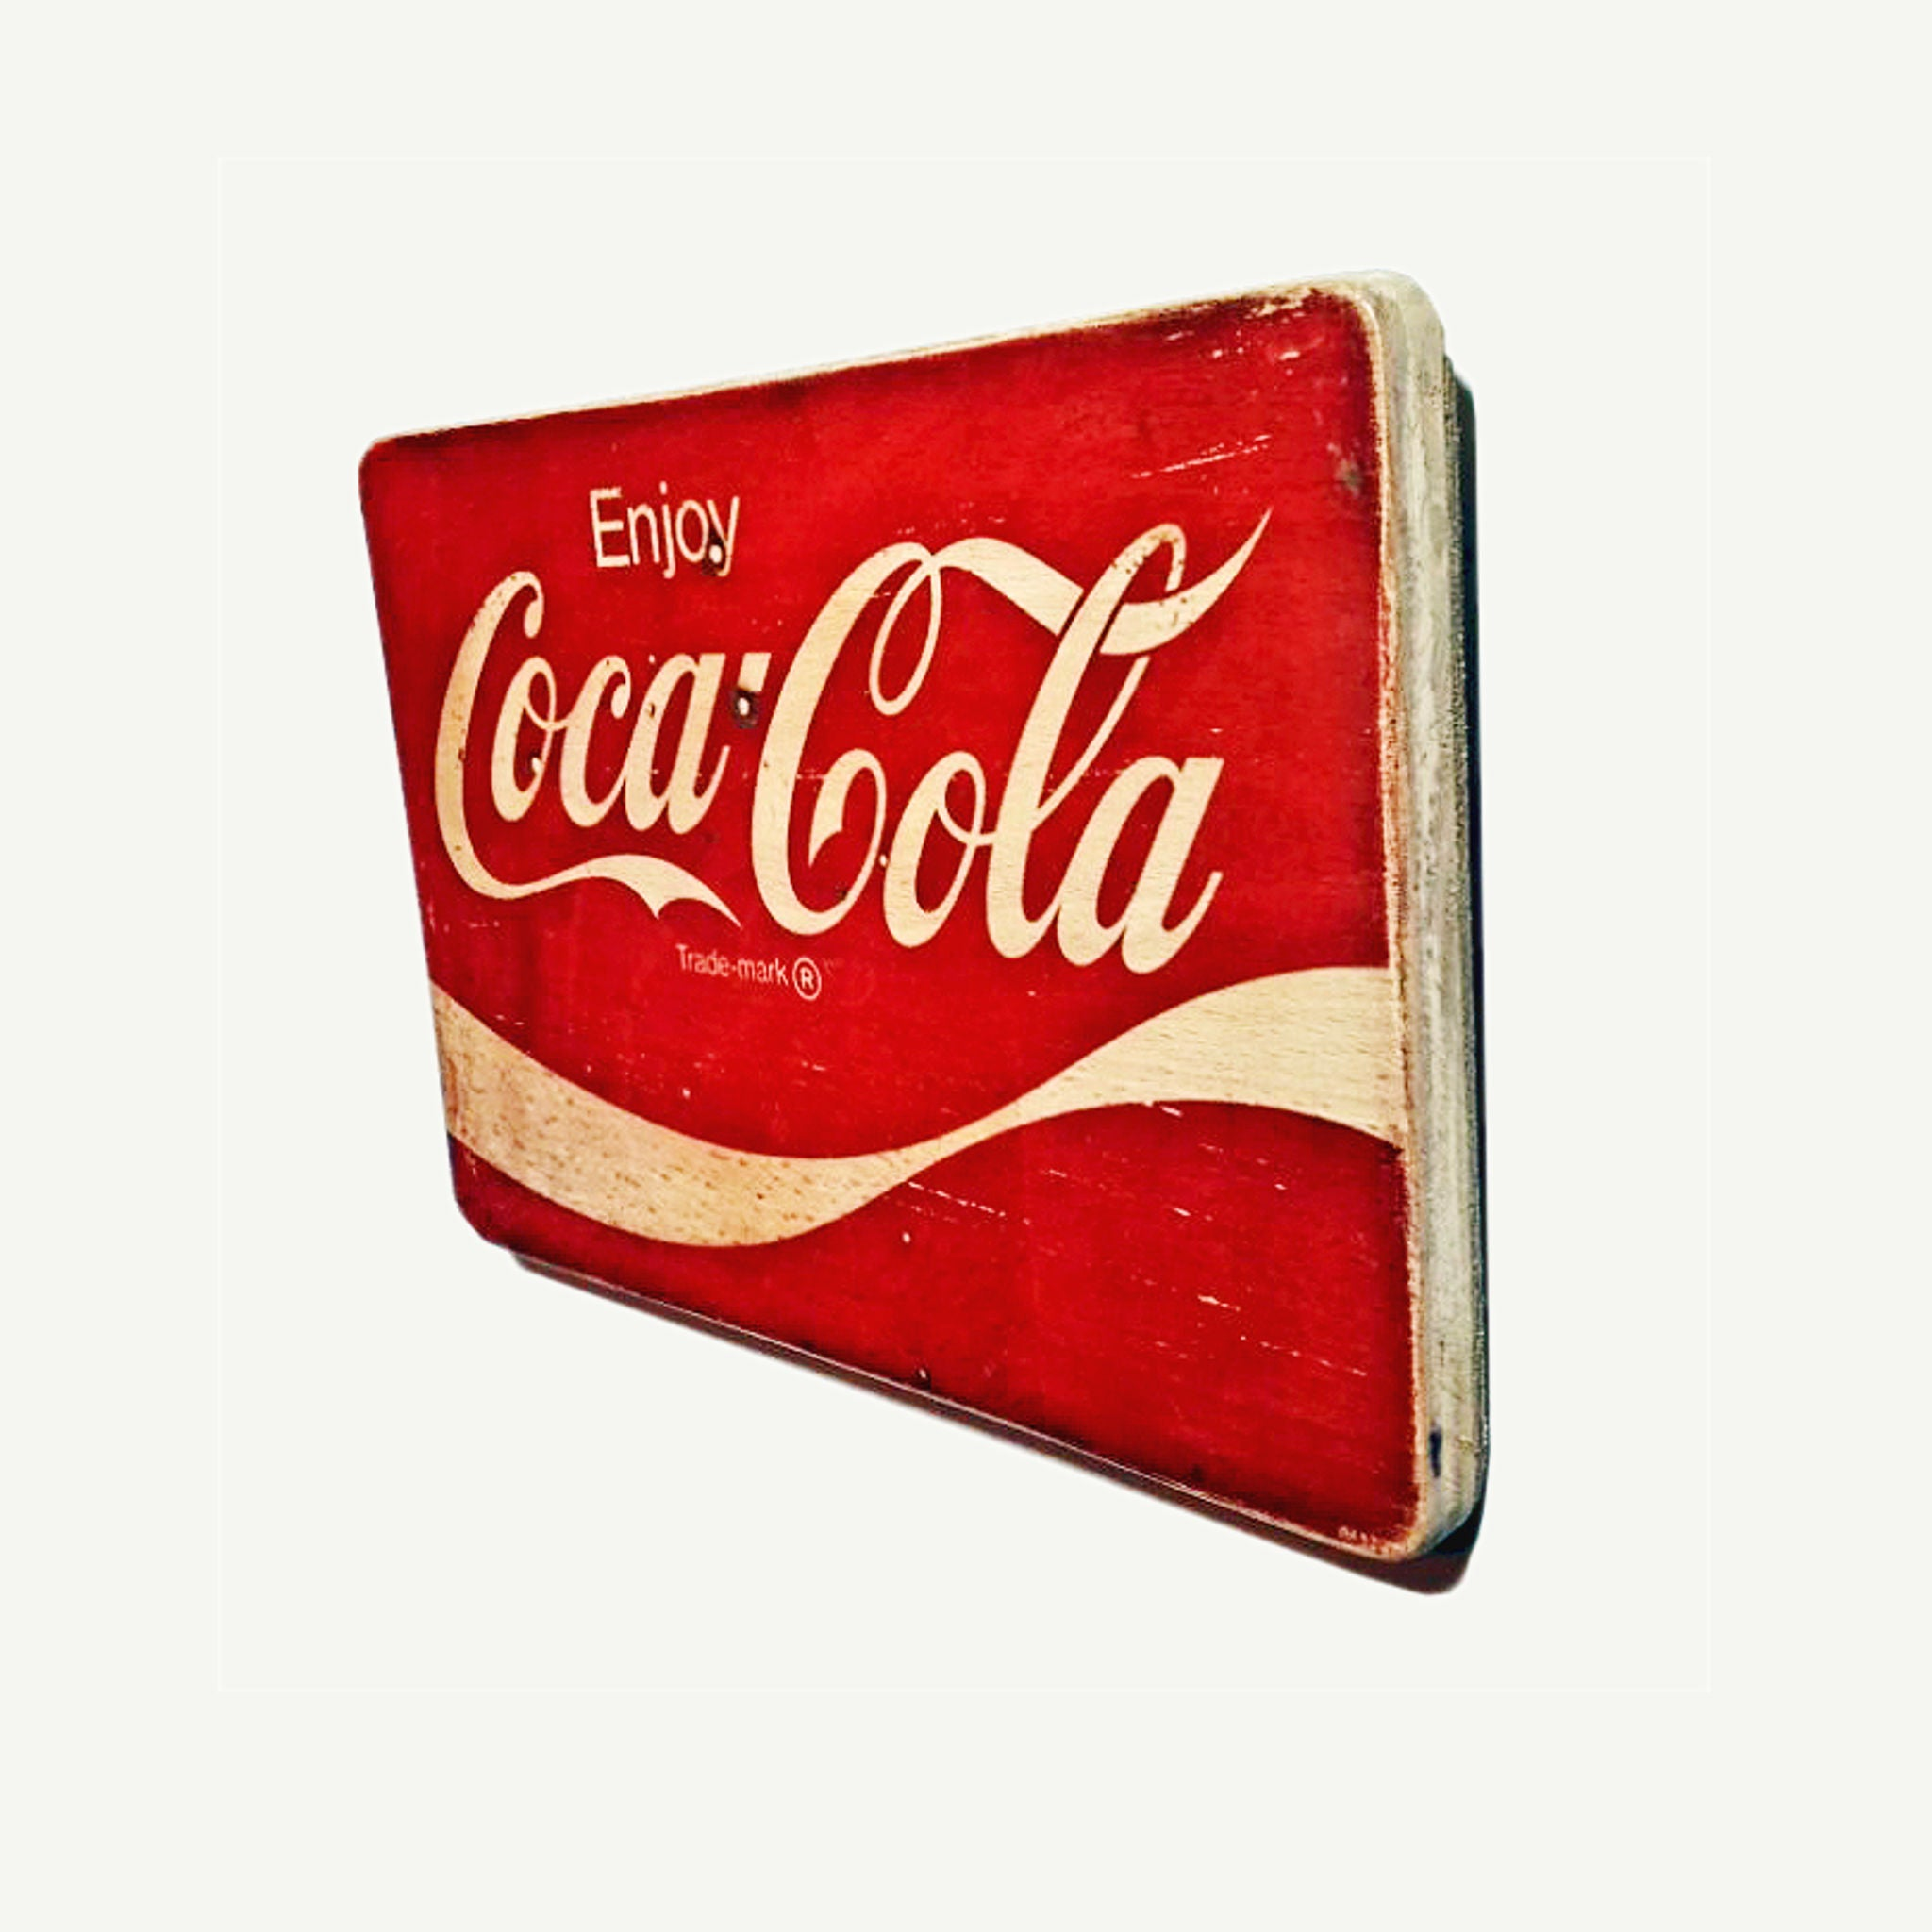 COCA COLA - Enjoy - Vintage ad - Recycle Art - artisanal wood print - https://artesanalwoodprint.com